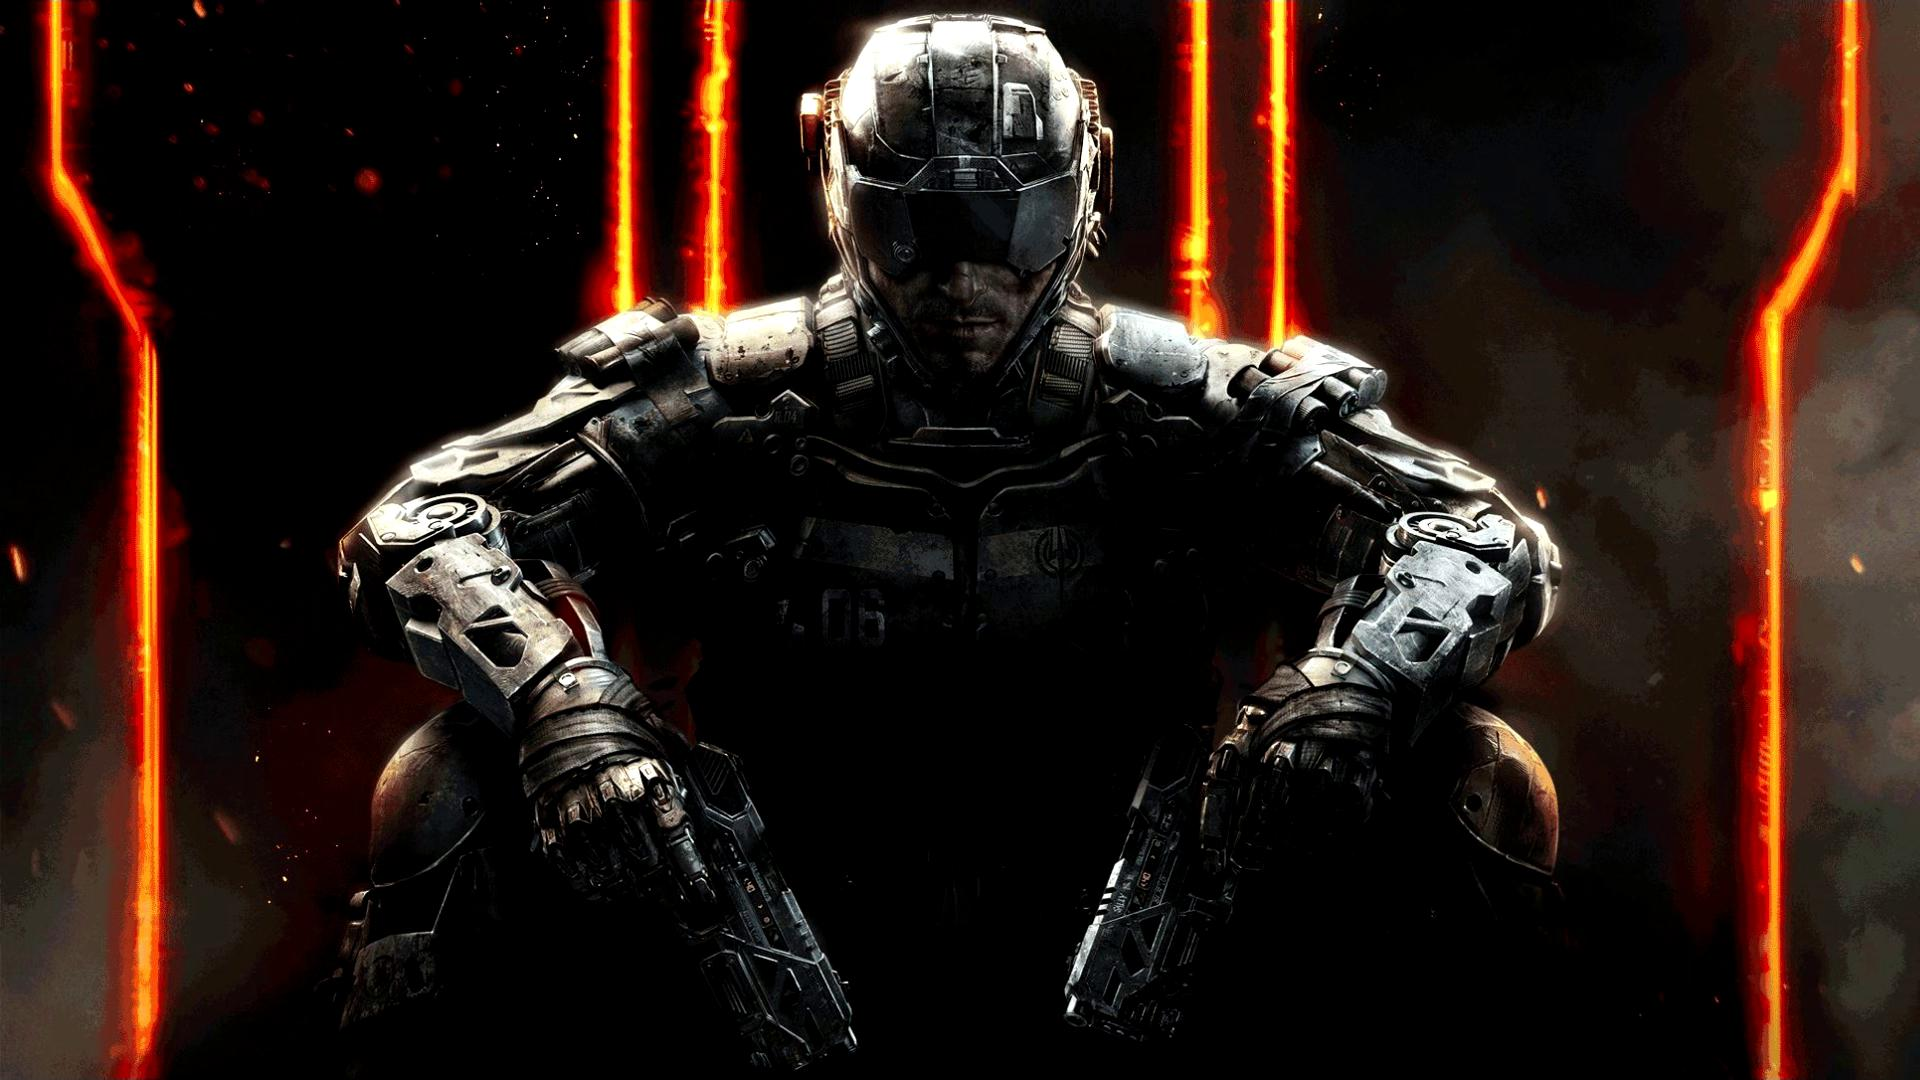 Call of Duty: Black Ops III Details - LaunchBox Games Database